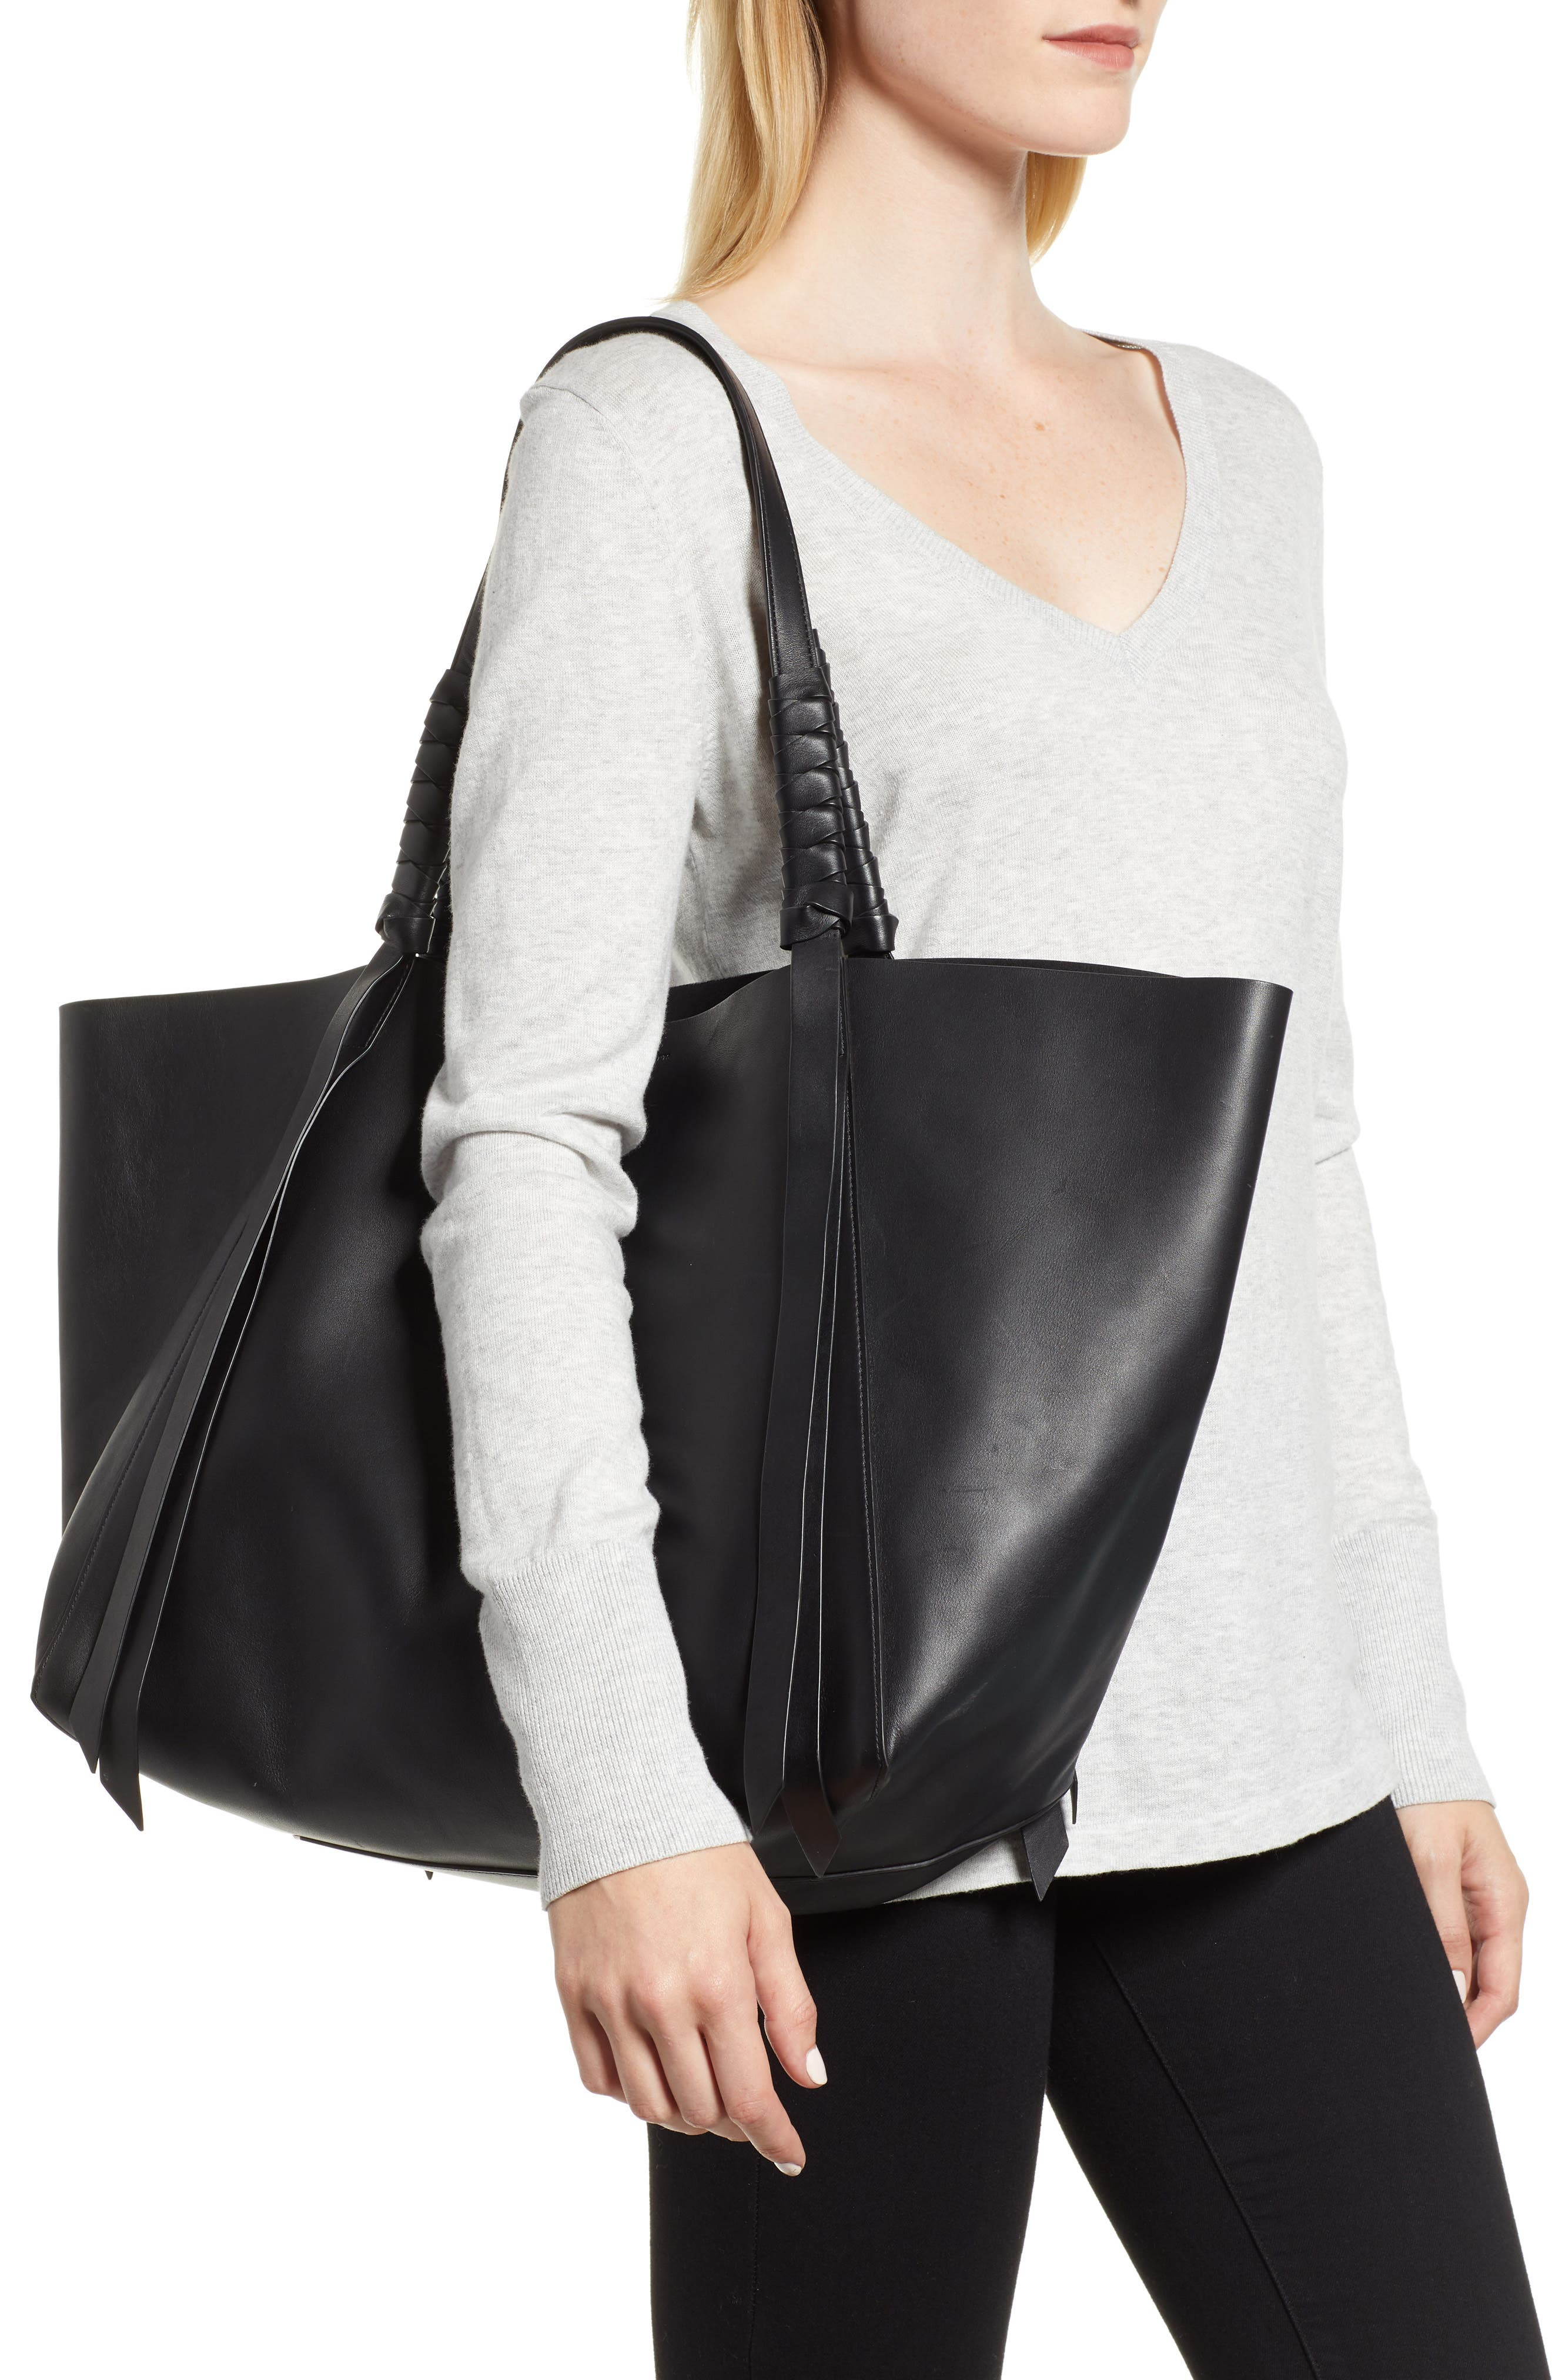 Voltaire Leather Tote,                             Alternate thumbnail 2, color,                             BLACK